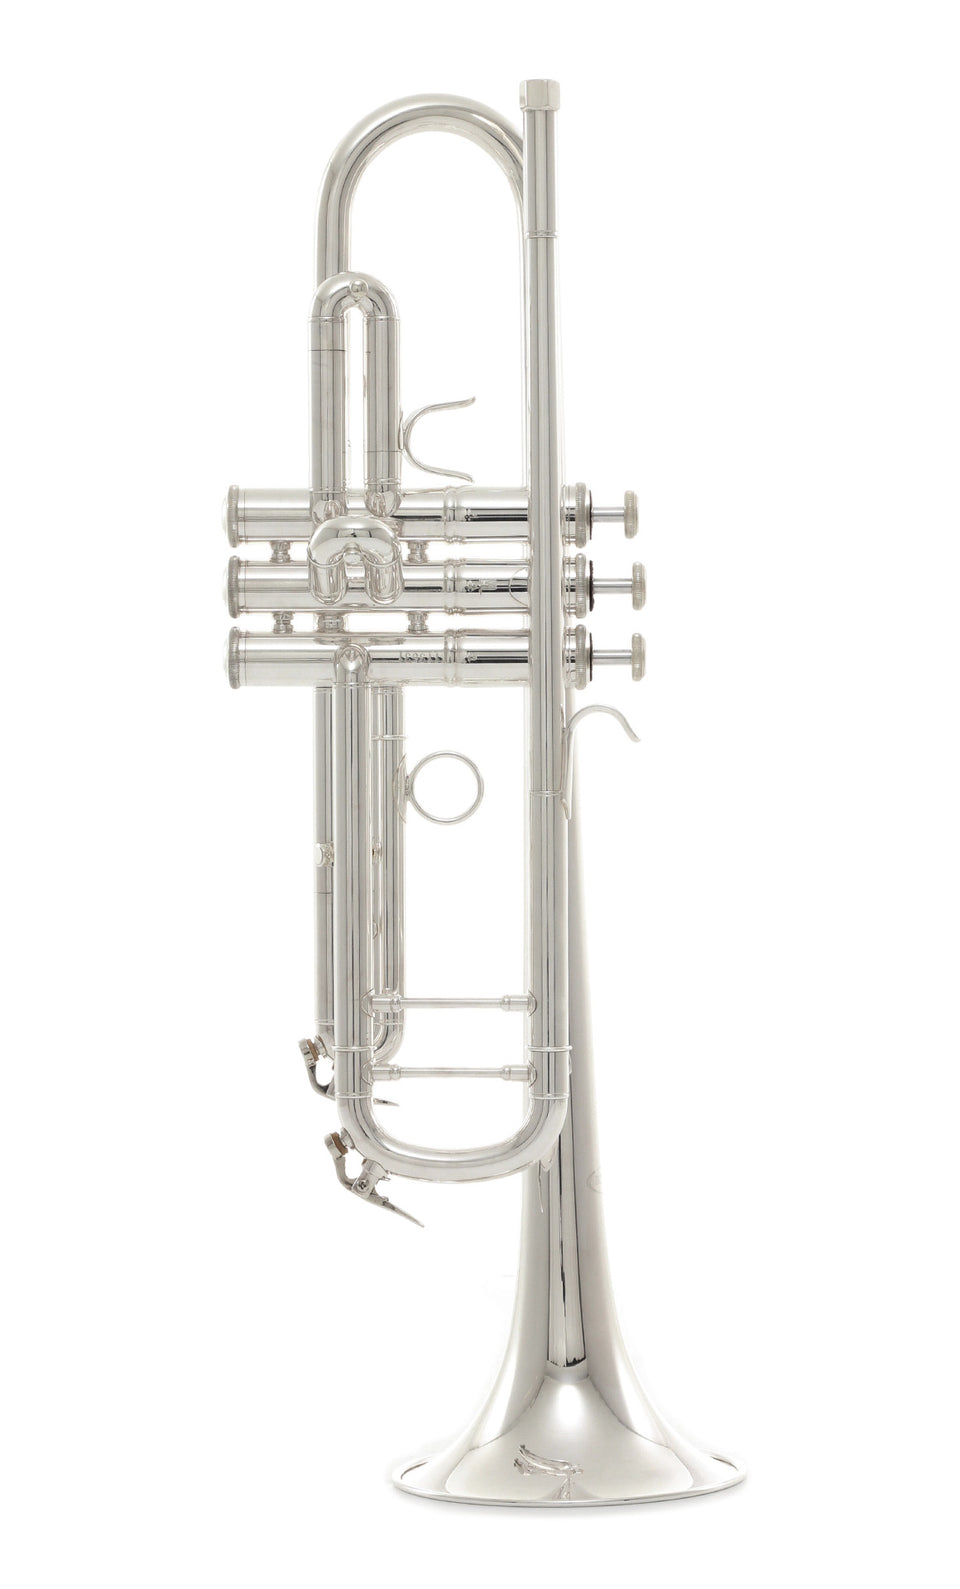 Schagerl TR-420S Academica Student Trumpet - Silver Plated